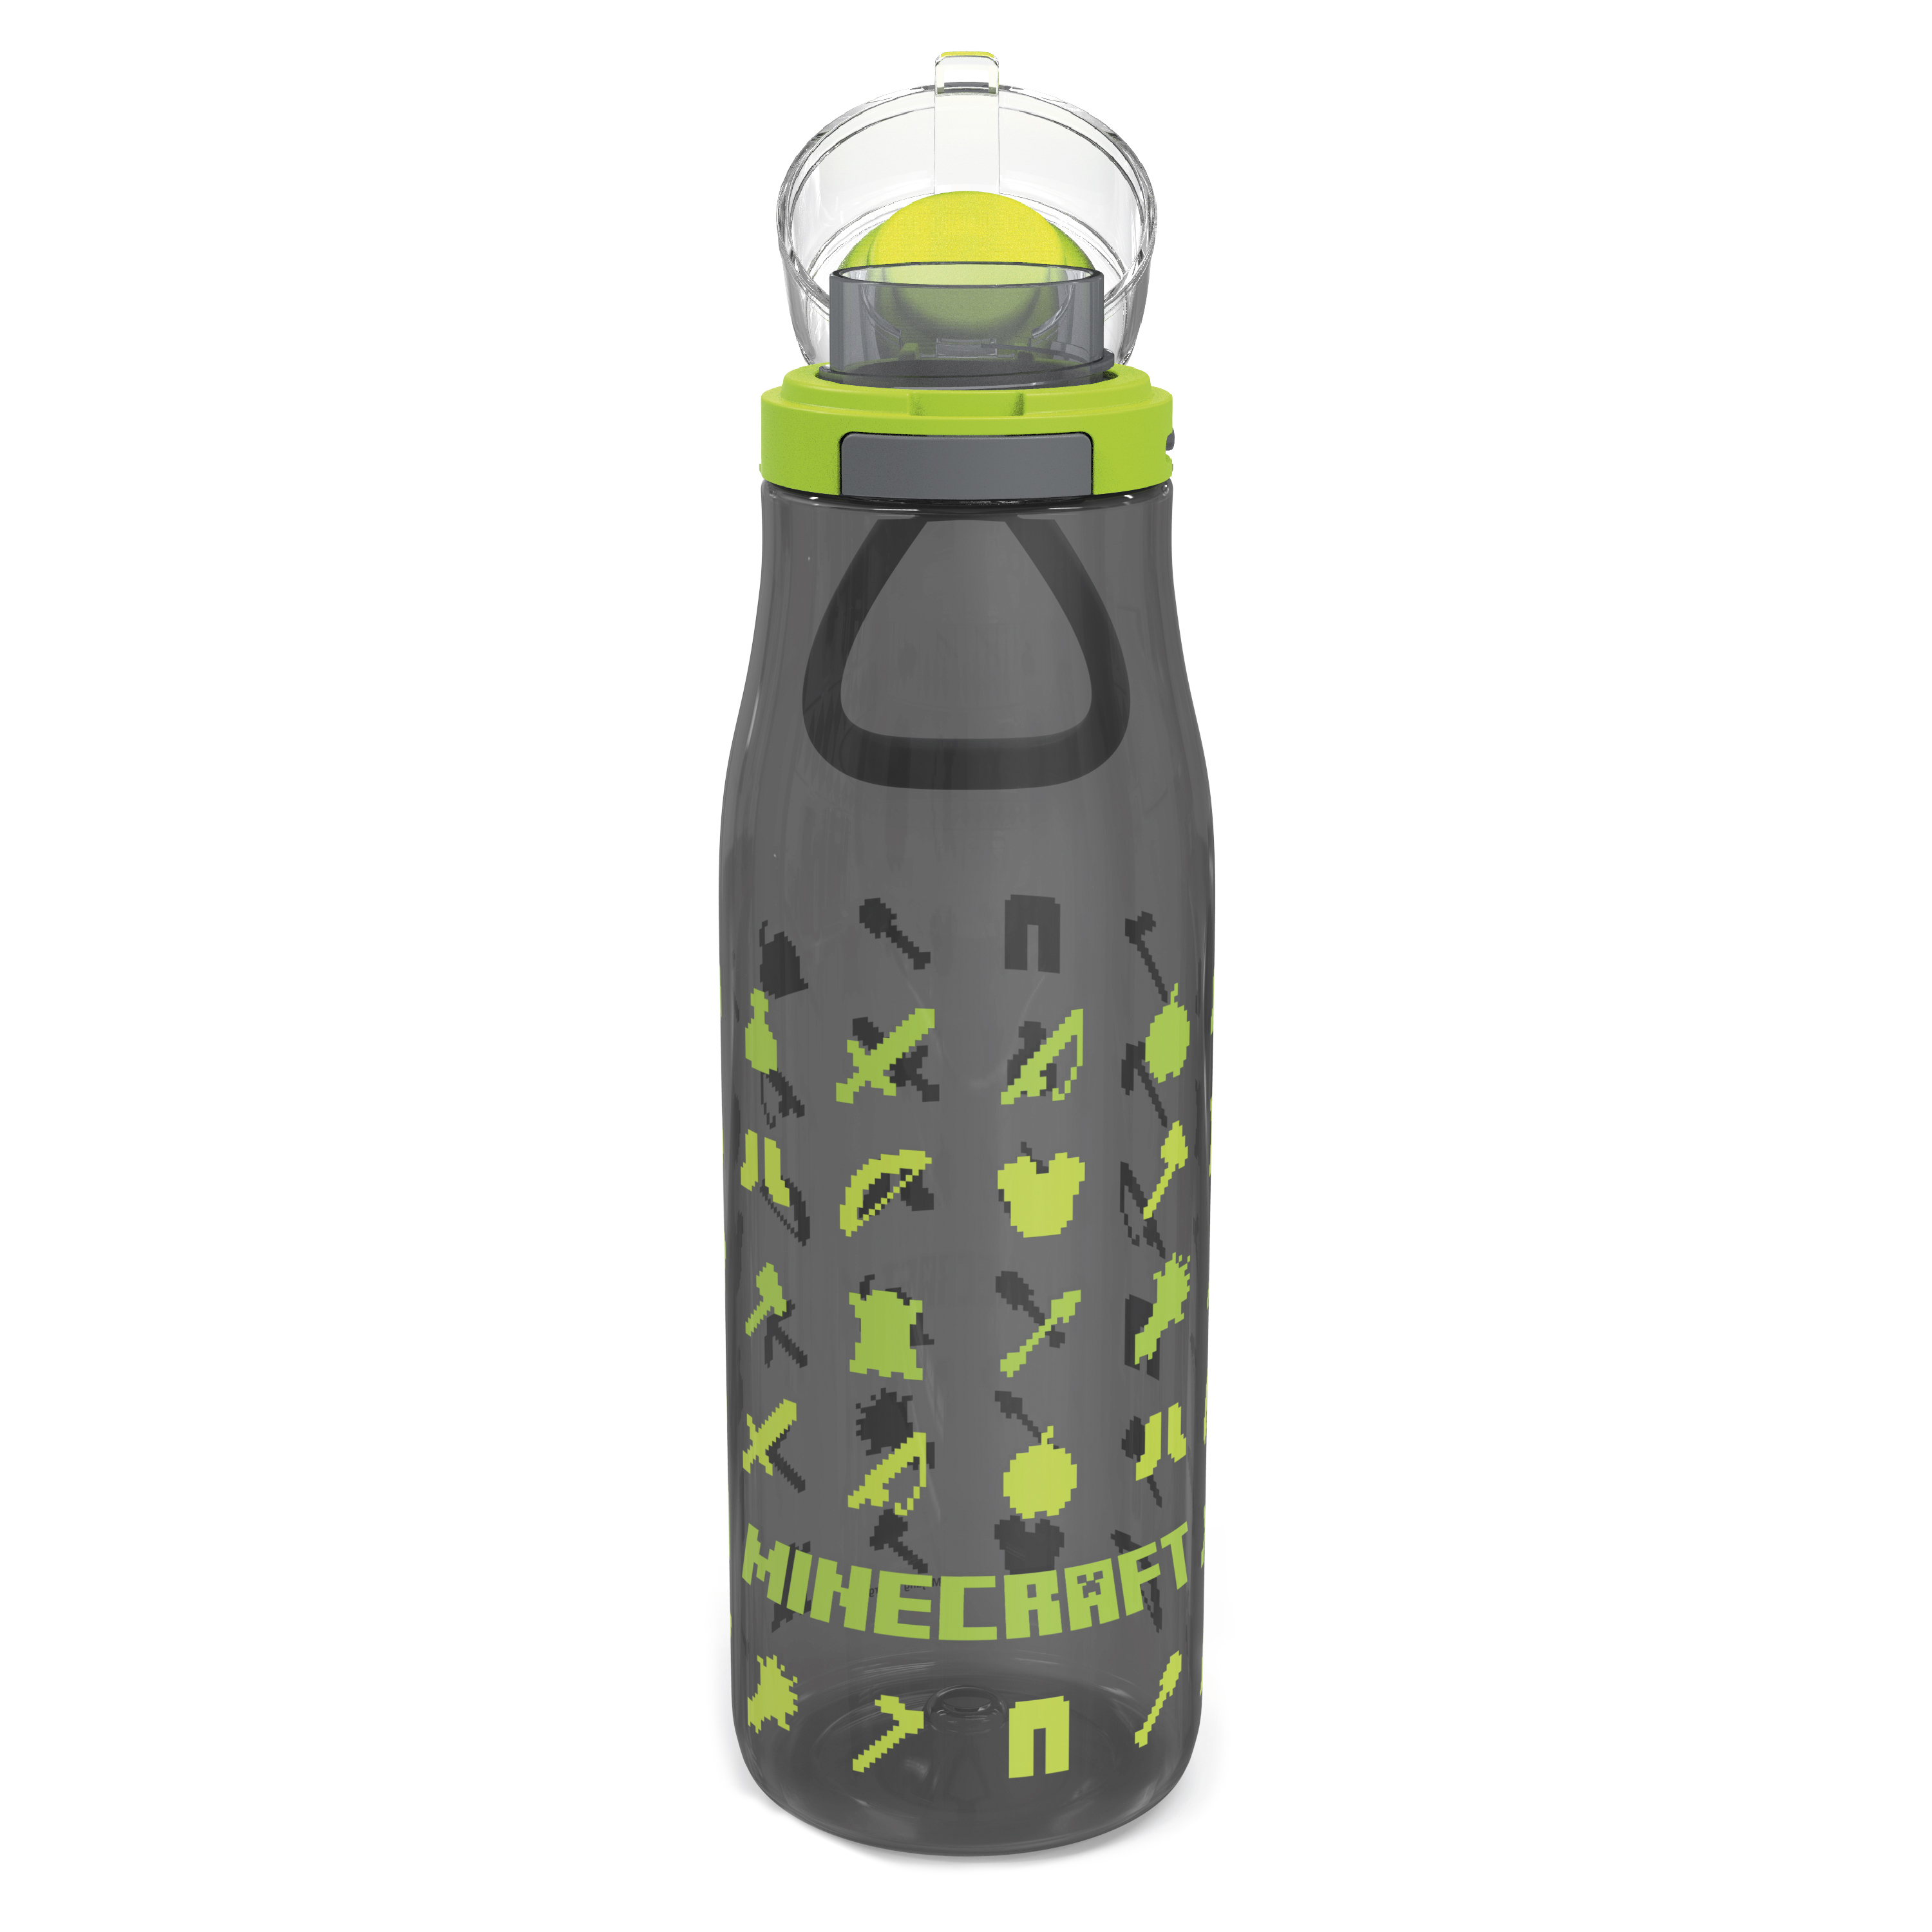 Minecraft 25 ounce Water Bottle and Straws, Weapons and Tools, 3-piece set slideshow image 2